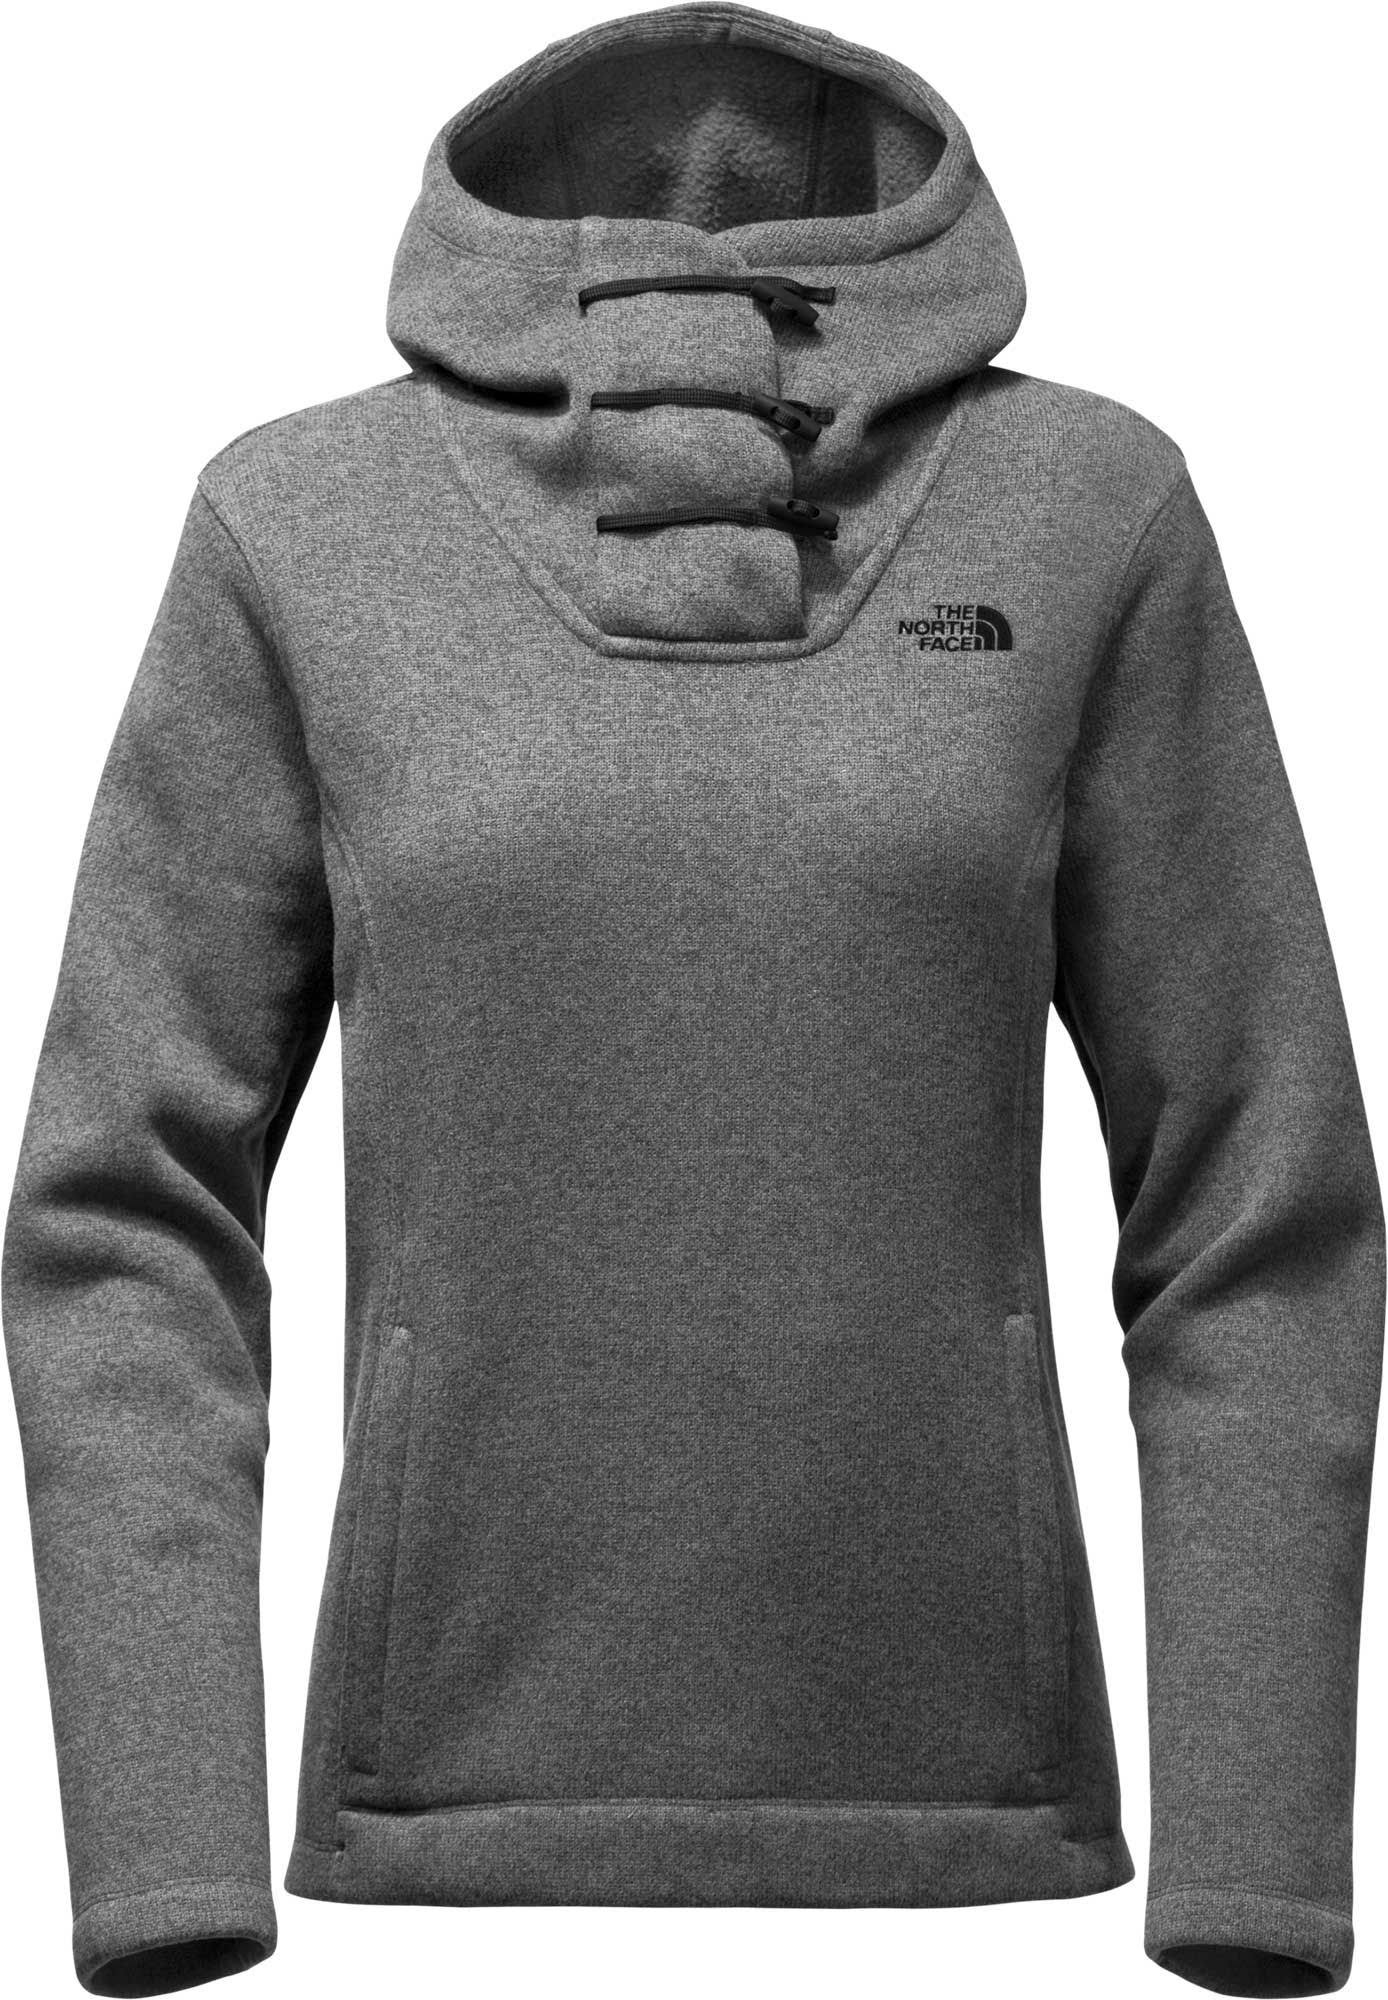 North Medium Crescent Hooded Tnf The Grey Heather da Pullover donnaxs Face 0OkXwP8n